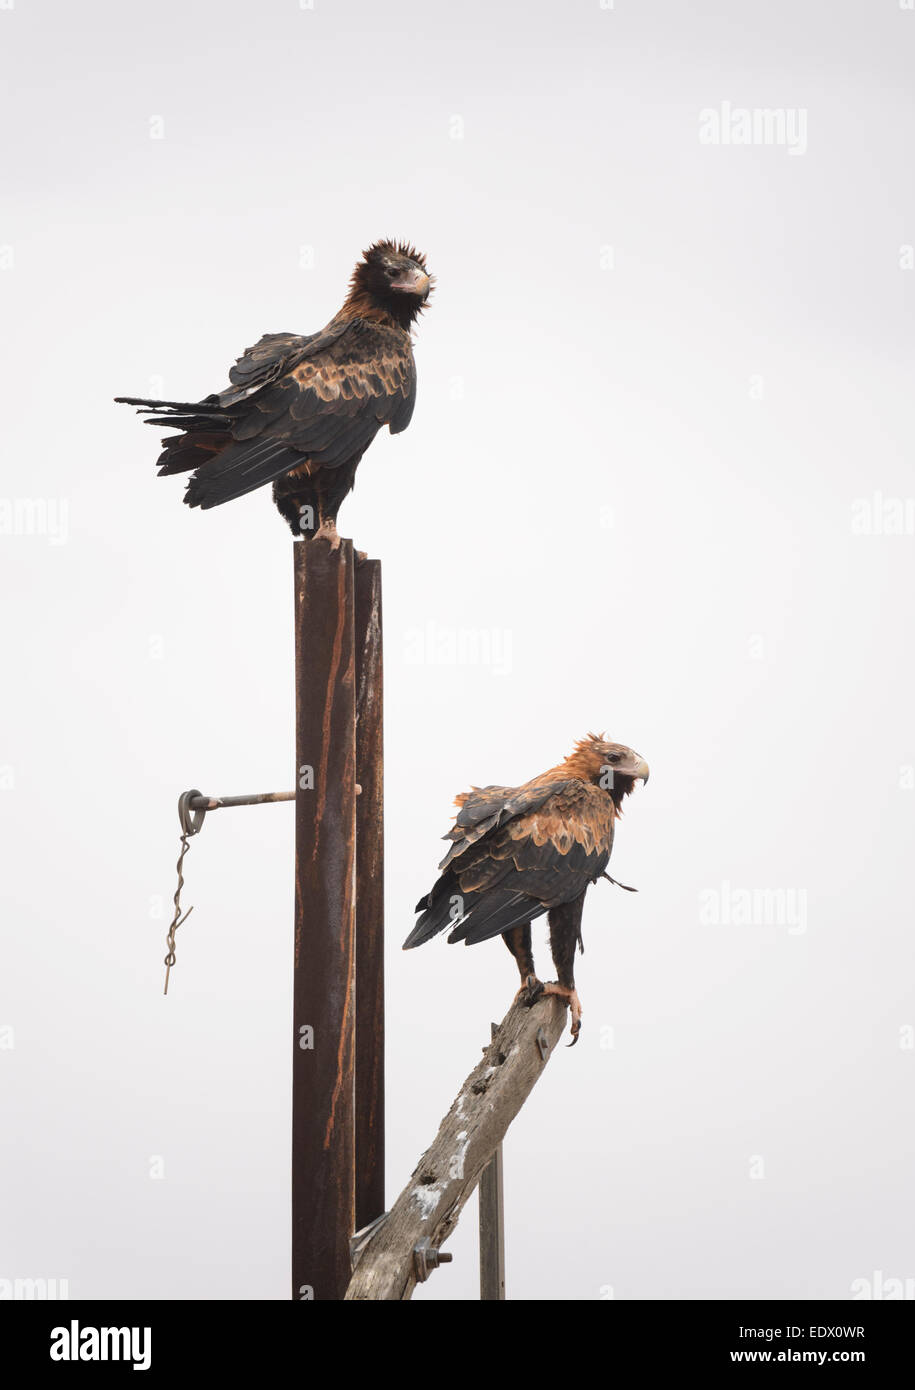 Wedge-tailed Eagles, Aquila audax, South Australia - Stock Image